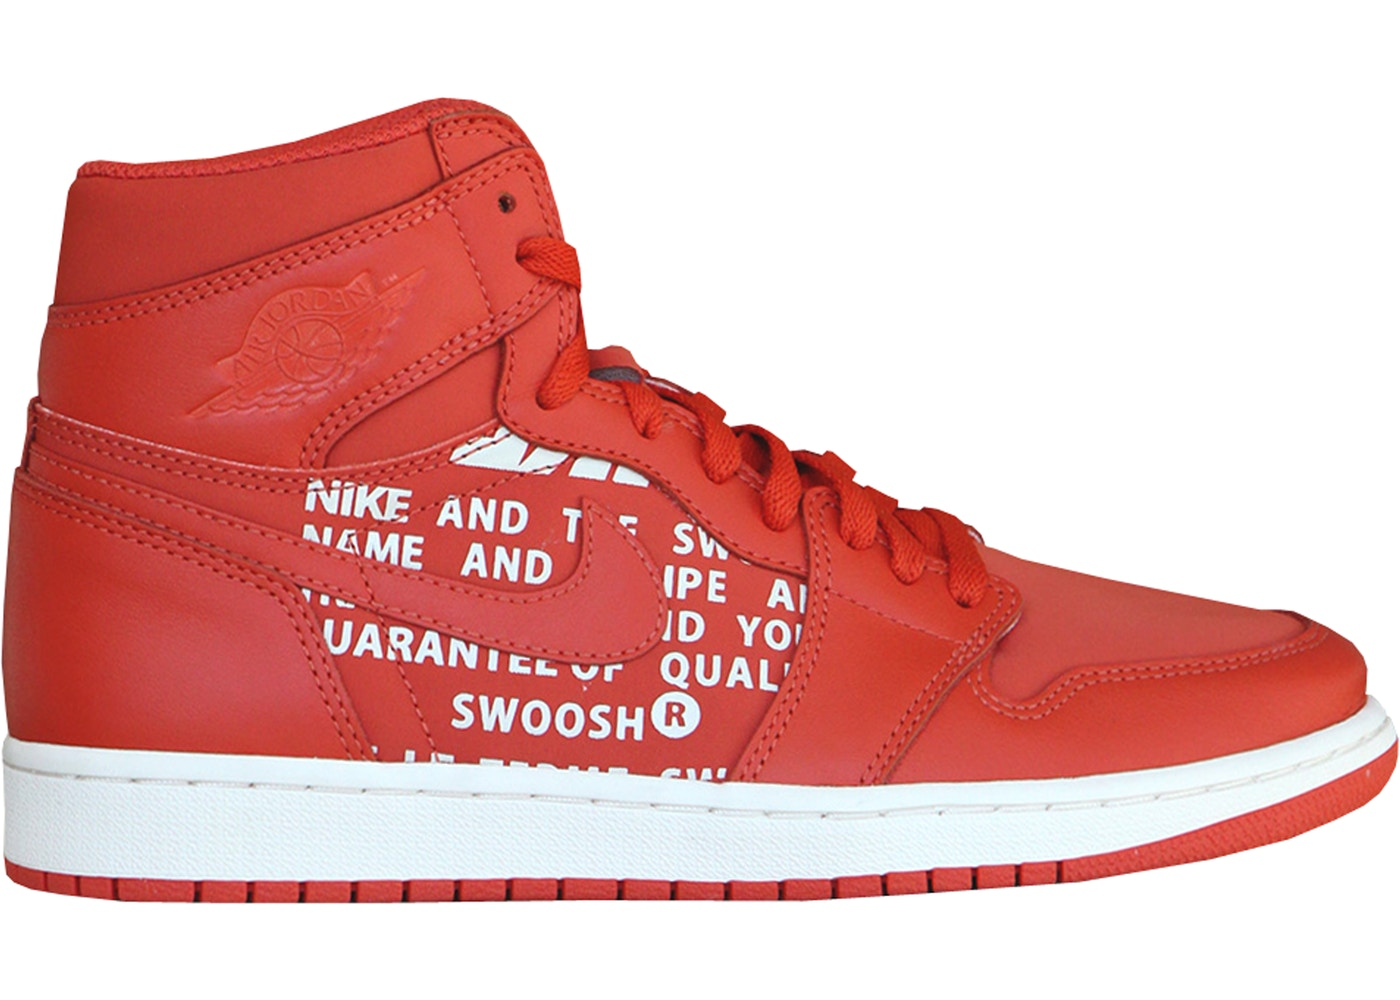 sneakers for cheap 5f8b3 877f7 Jordan 1 Retro High Vintage Coral - 555088-800